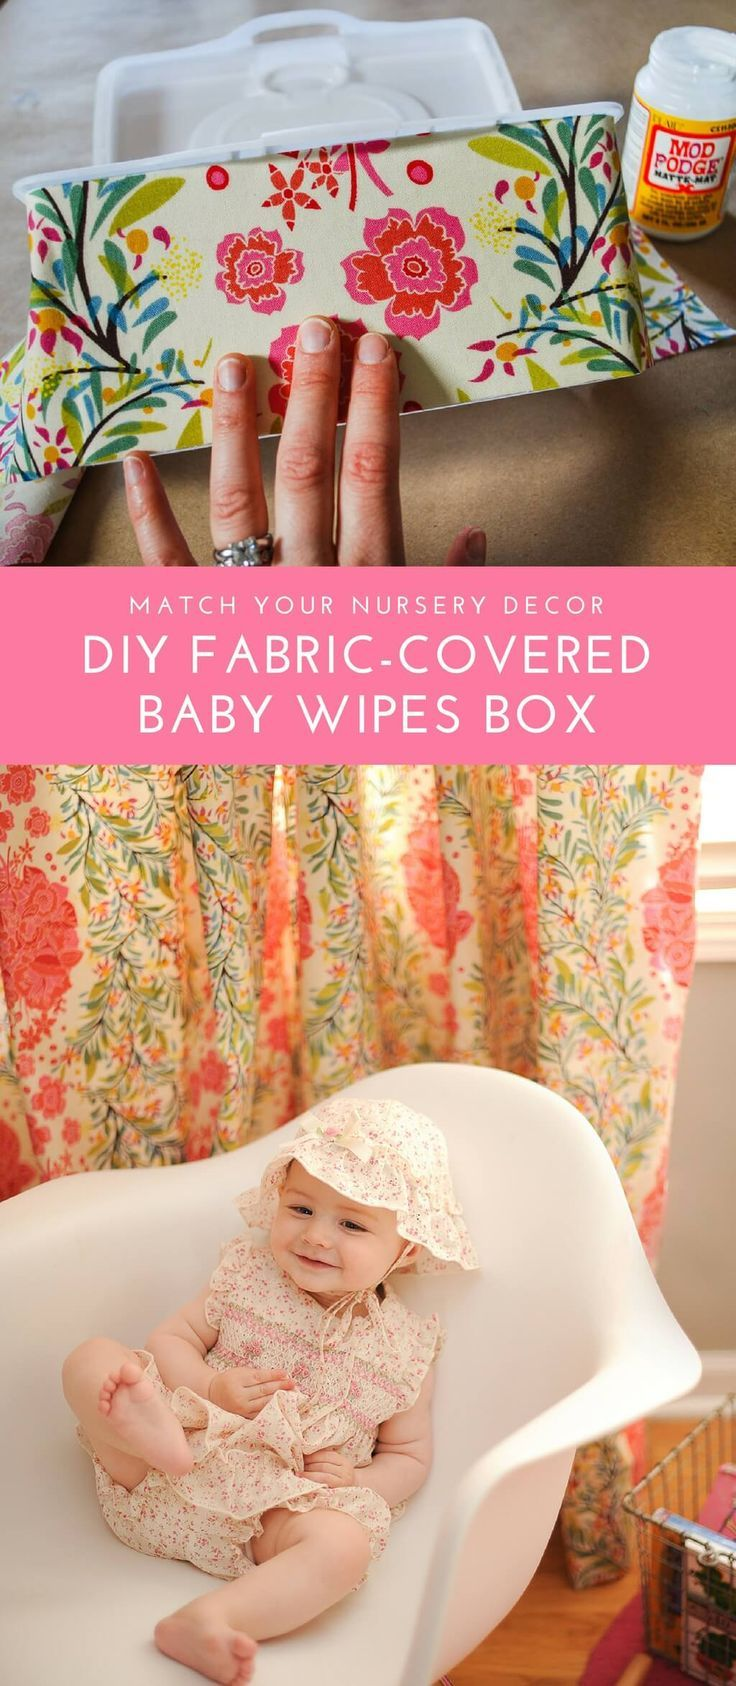 Cover a refillable baby wipes box with fabric to match your nursery decor. This easy DIY baby wipes container craft uses just Mod Podge and a bit of fabric. No need to hide your wipes box anymore! #nursery #decor #modpodge #decoupage #craft #baby